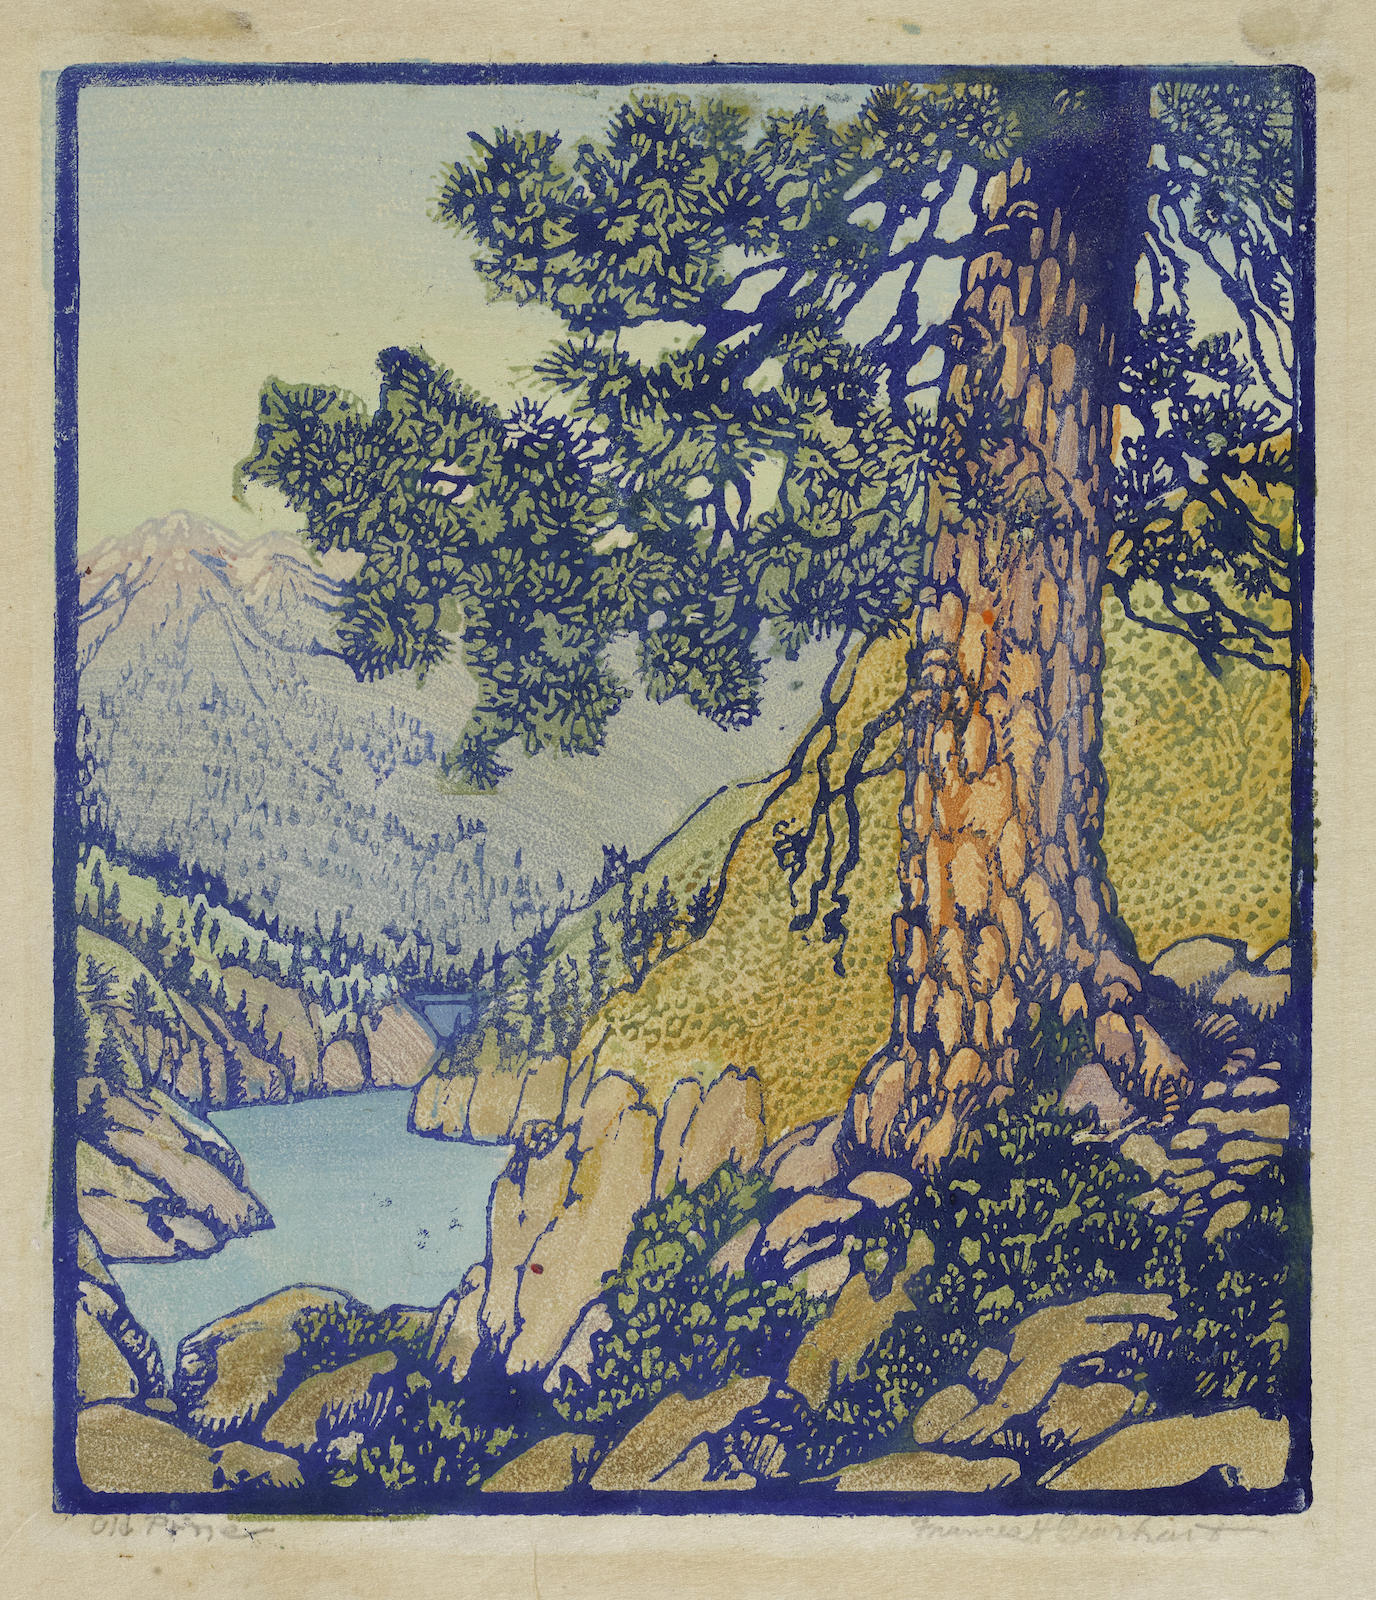 Frances Hammell Gearhart-Big Pine (Old Pine) (Pmca, P. 110)-